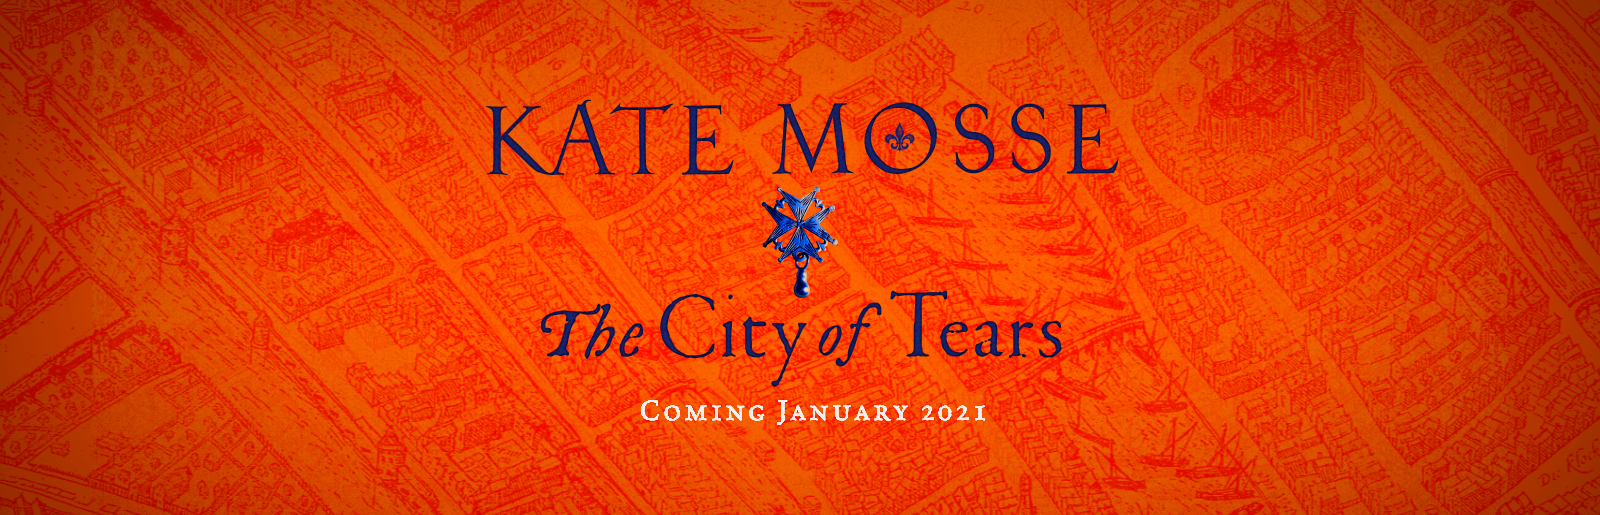 City Of Tears Bannerwebsite